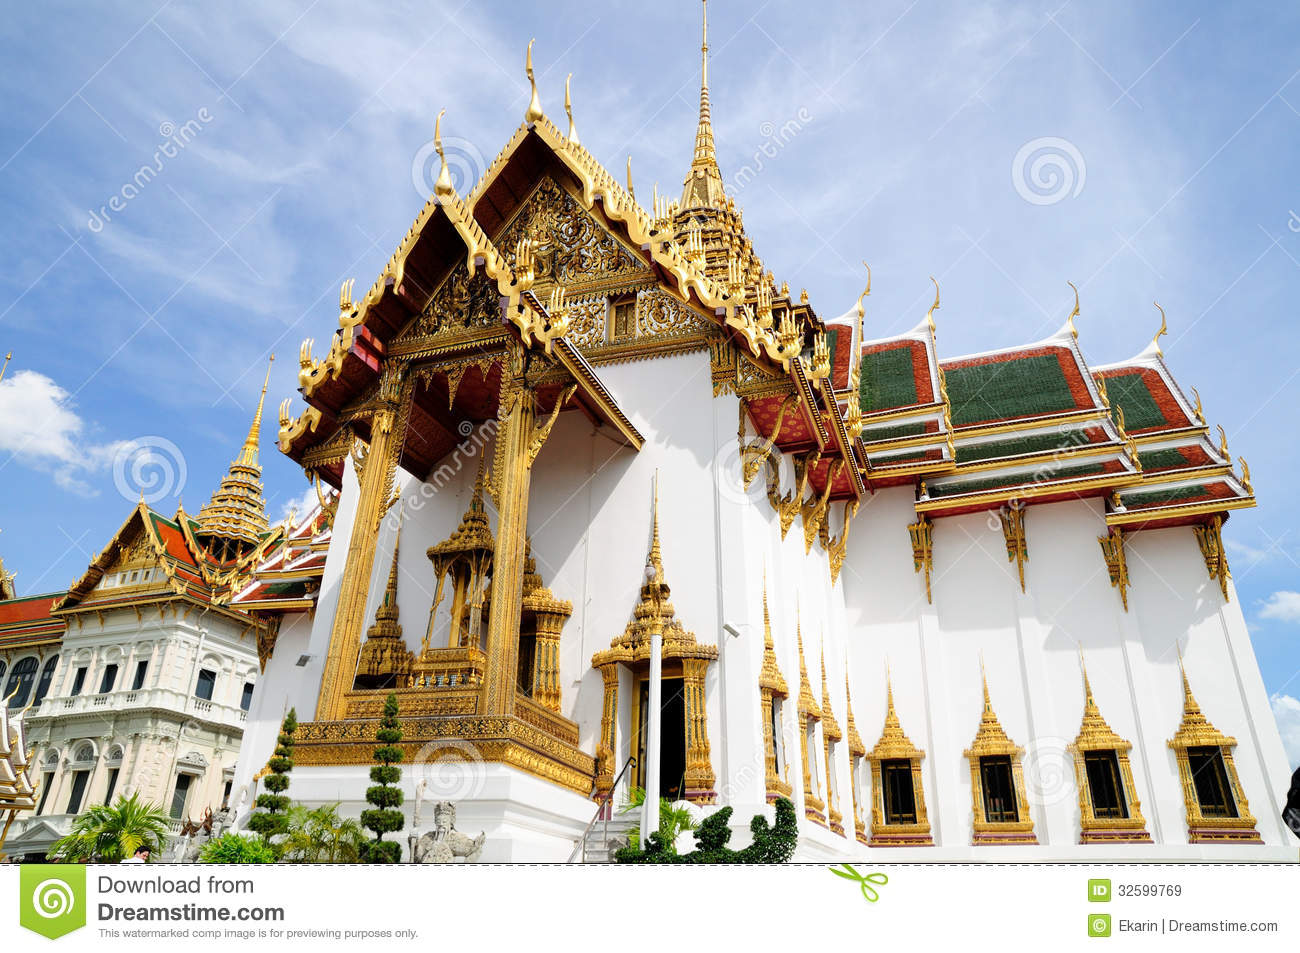 Phra Thinang Dusit Maha Prasat In Royal Palace Bangkok ...